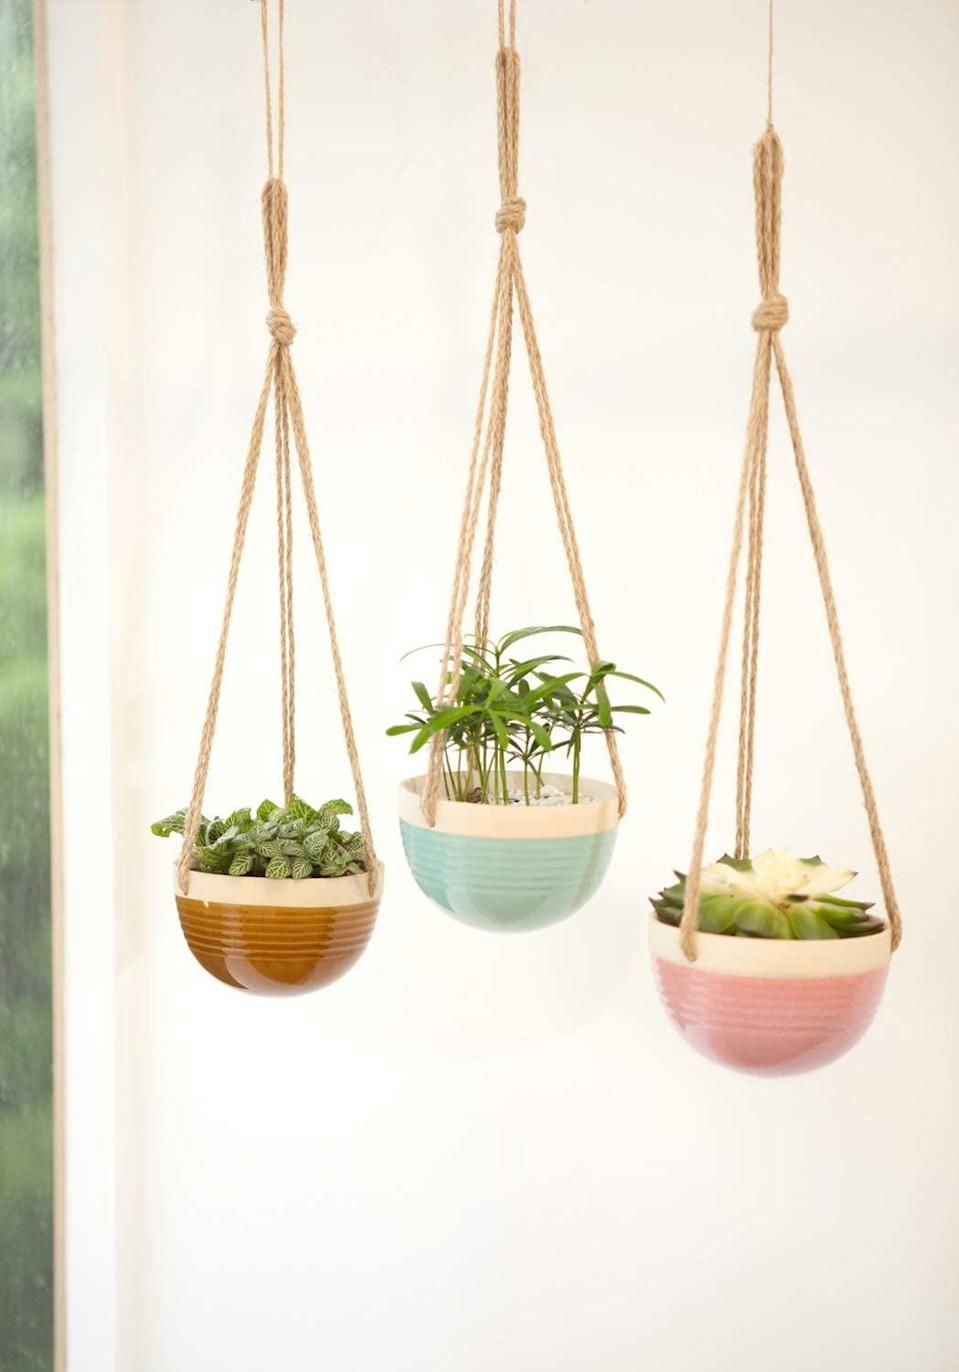 """<h2>Mkono Ceramic Hanging Planter Trio</h2> <br>This sweet trio of color-popped ceramic planters hanging from simple jute ropes is ready to brighten up a kitchen to living room or bedside corner. <br><br><strong>Mkono</strong> Ceramic Hanging Planters, 3-Pack, $, available at <a href=""""https://amzn.to/2JeGKfh"""" rel=""""nofollow noopener"""" target=""""_blank"""" data-ylk=""""slk:Amazon"""" class=""""link rapid-noclick-resp"""">Amazon</a><br>"""